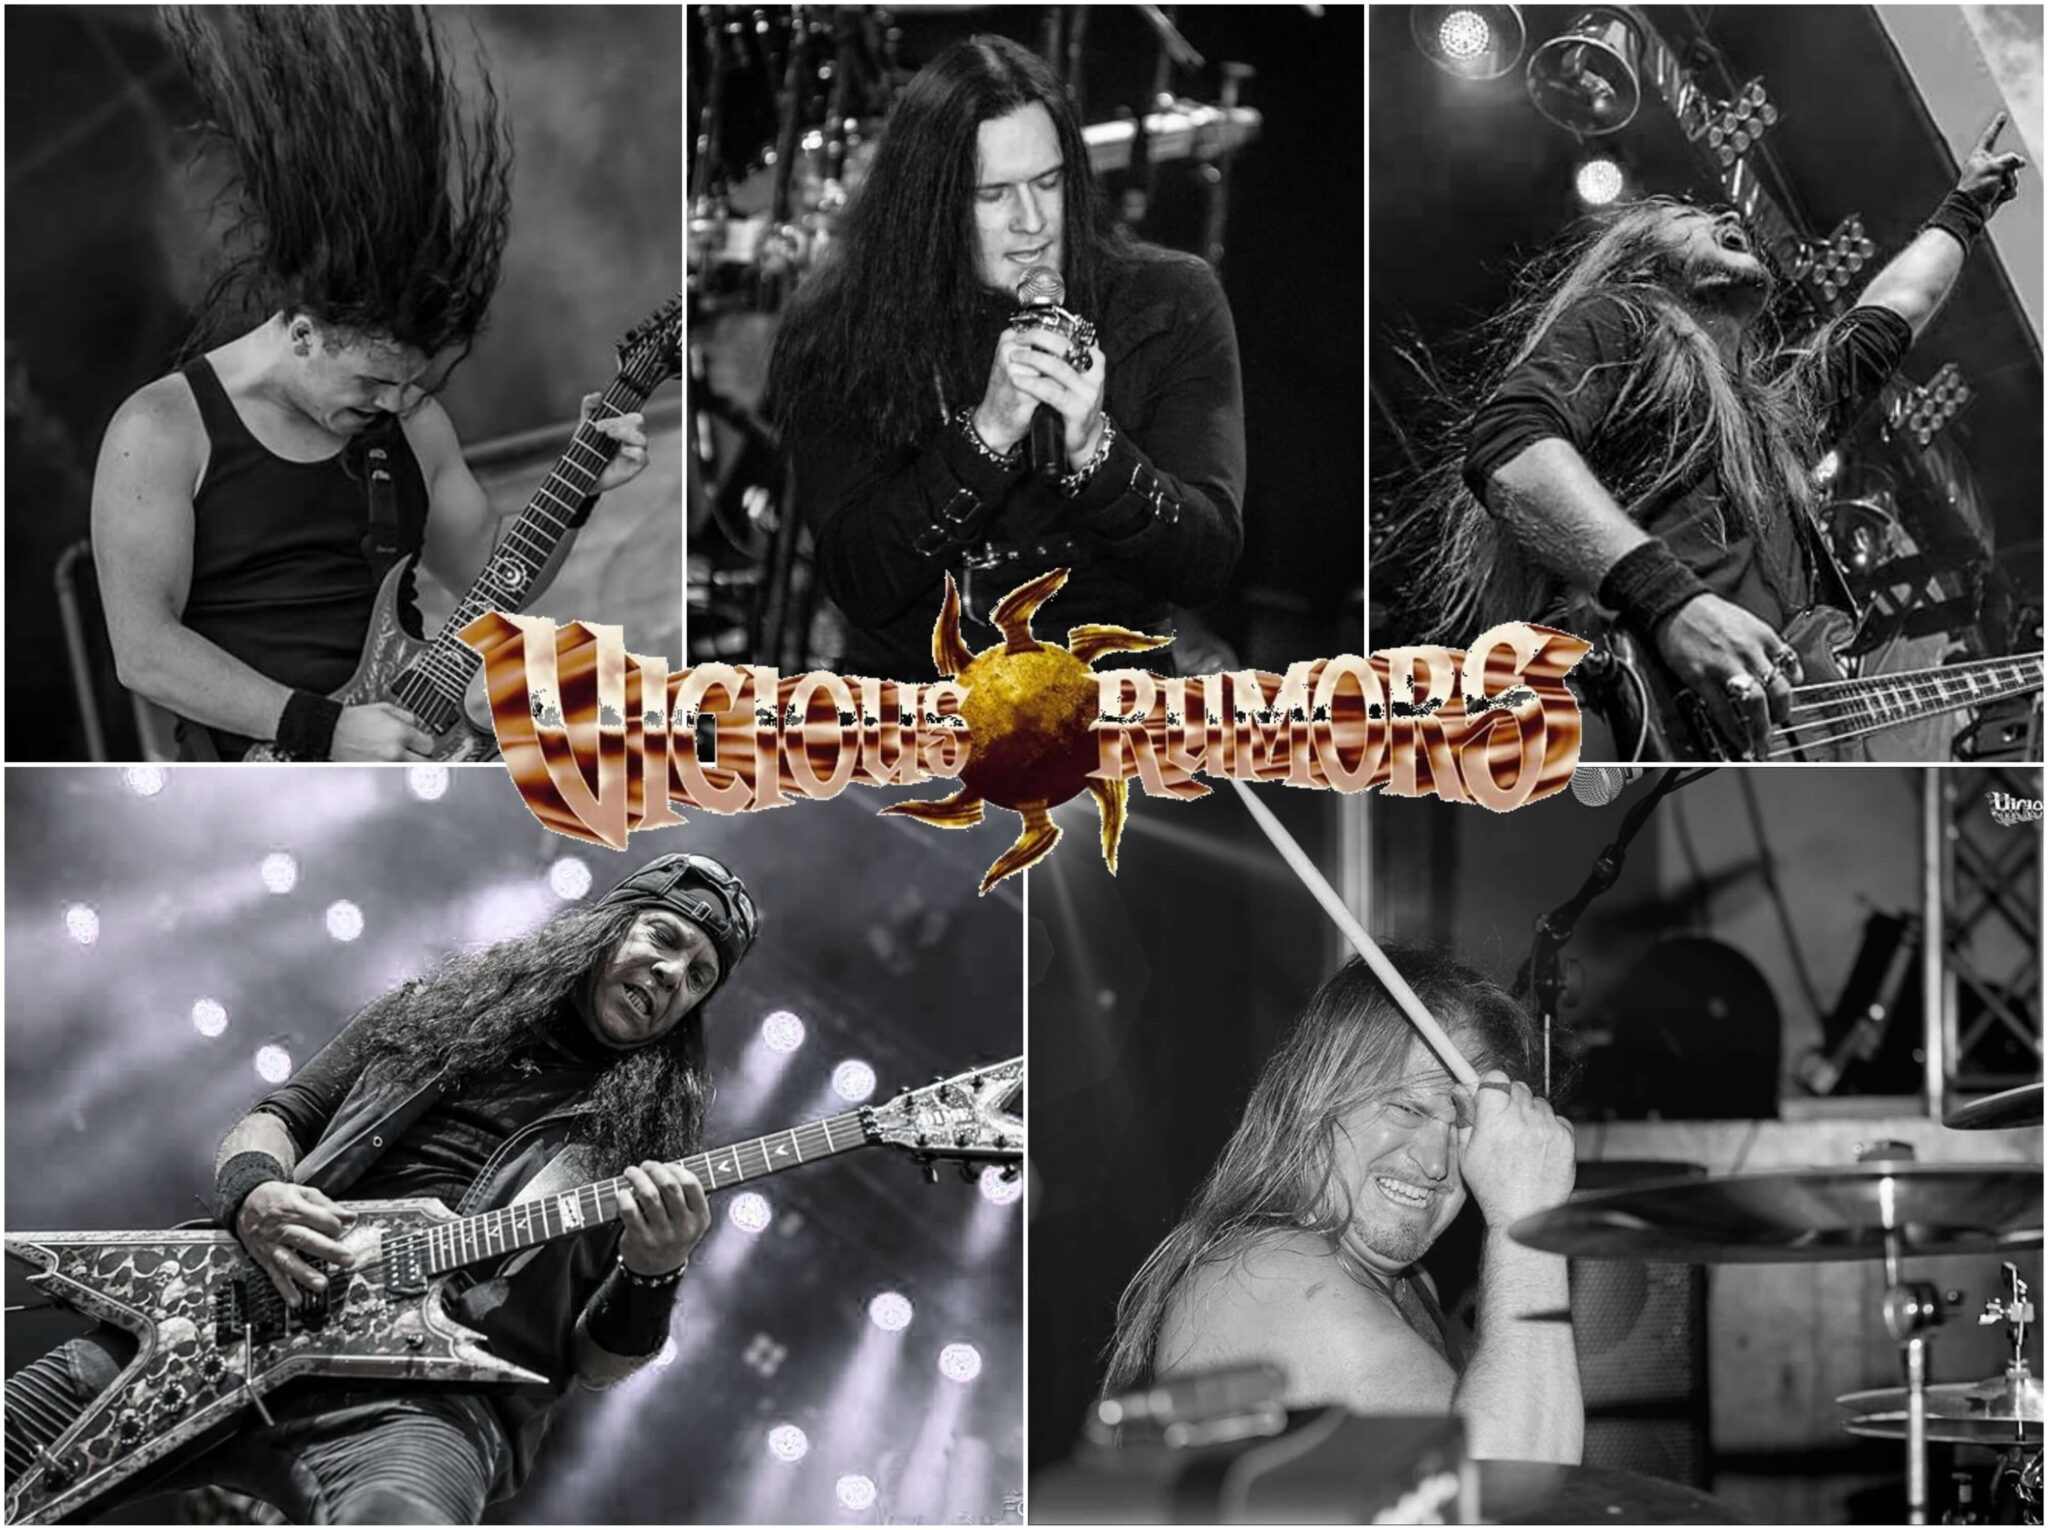 Vicious Rumors Announce New Singer Nick Courtney & New Record Contract